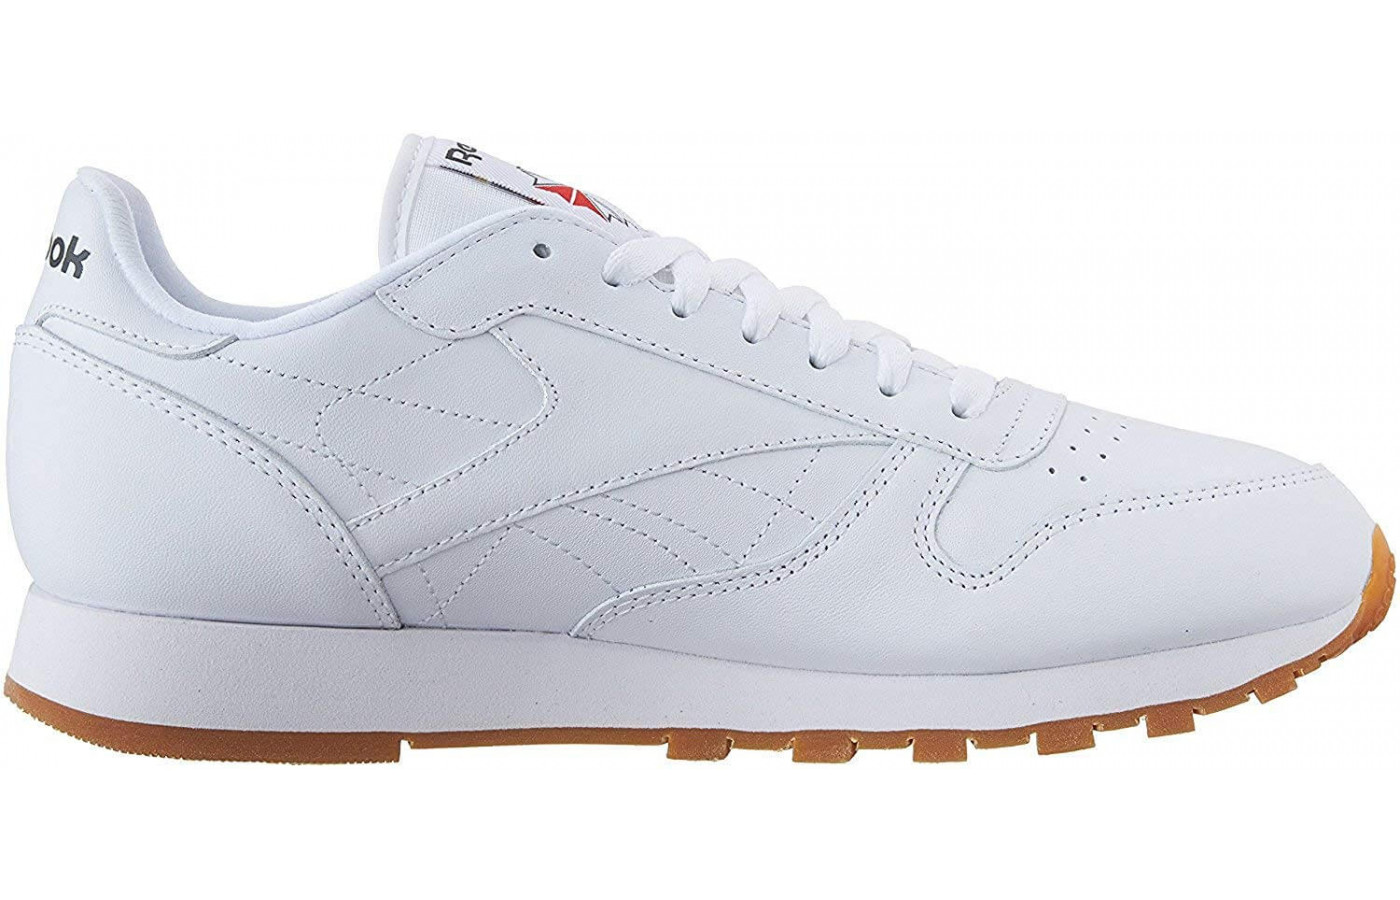 Reebok Classic Leather Fully Reviewed for Quality